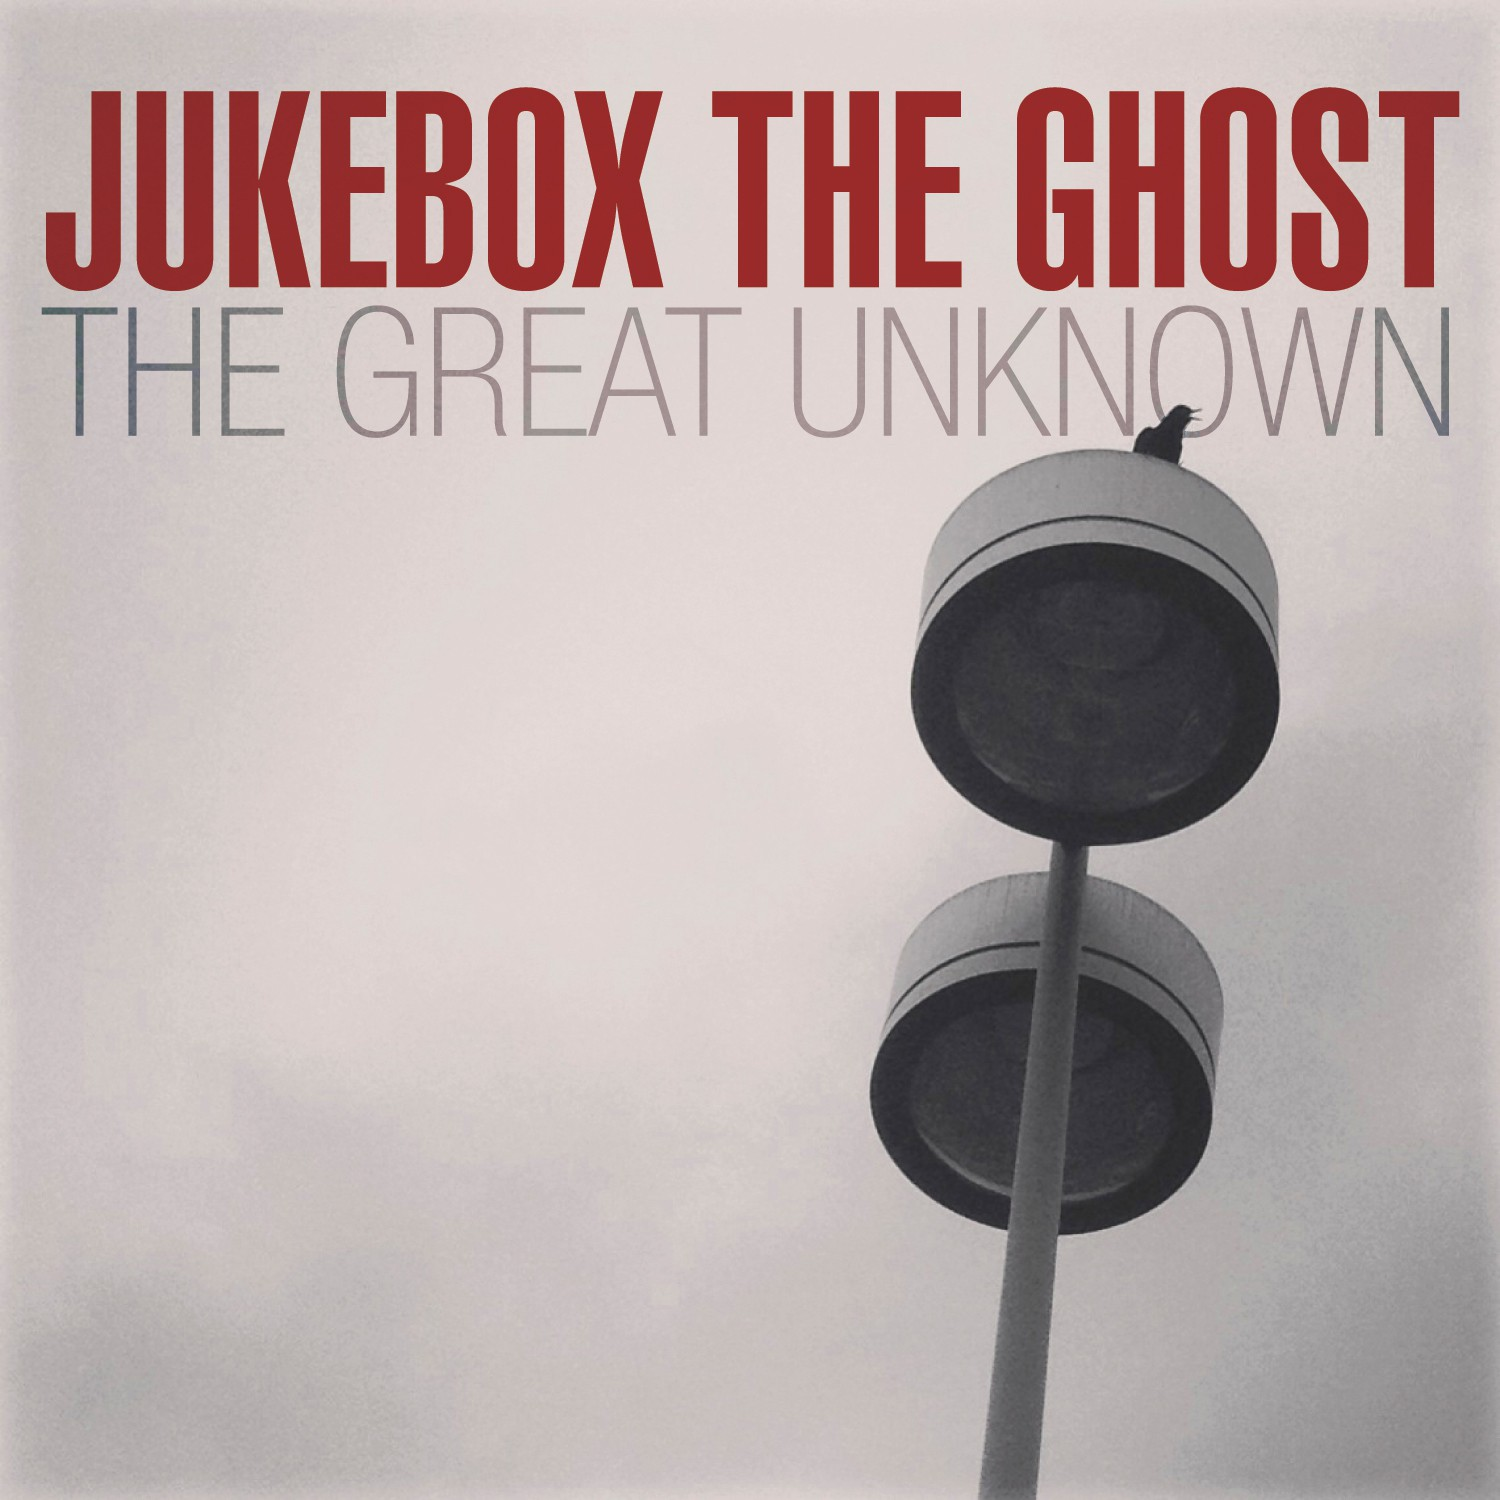 Jukebox The Ghost - Great Unknown - Digital Single